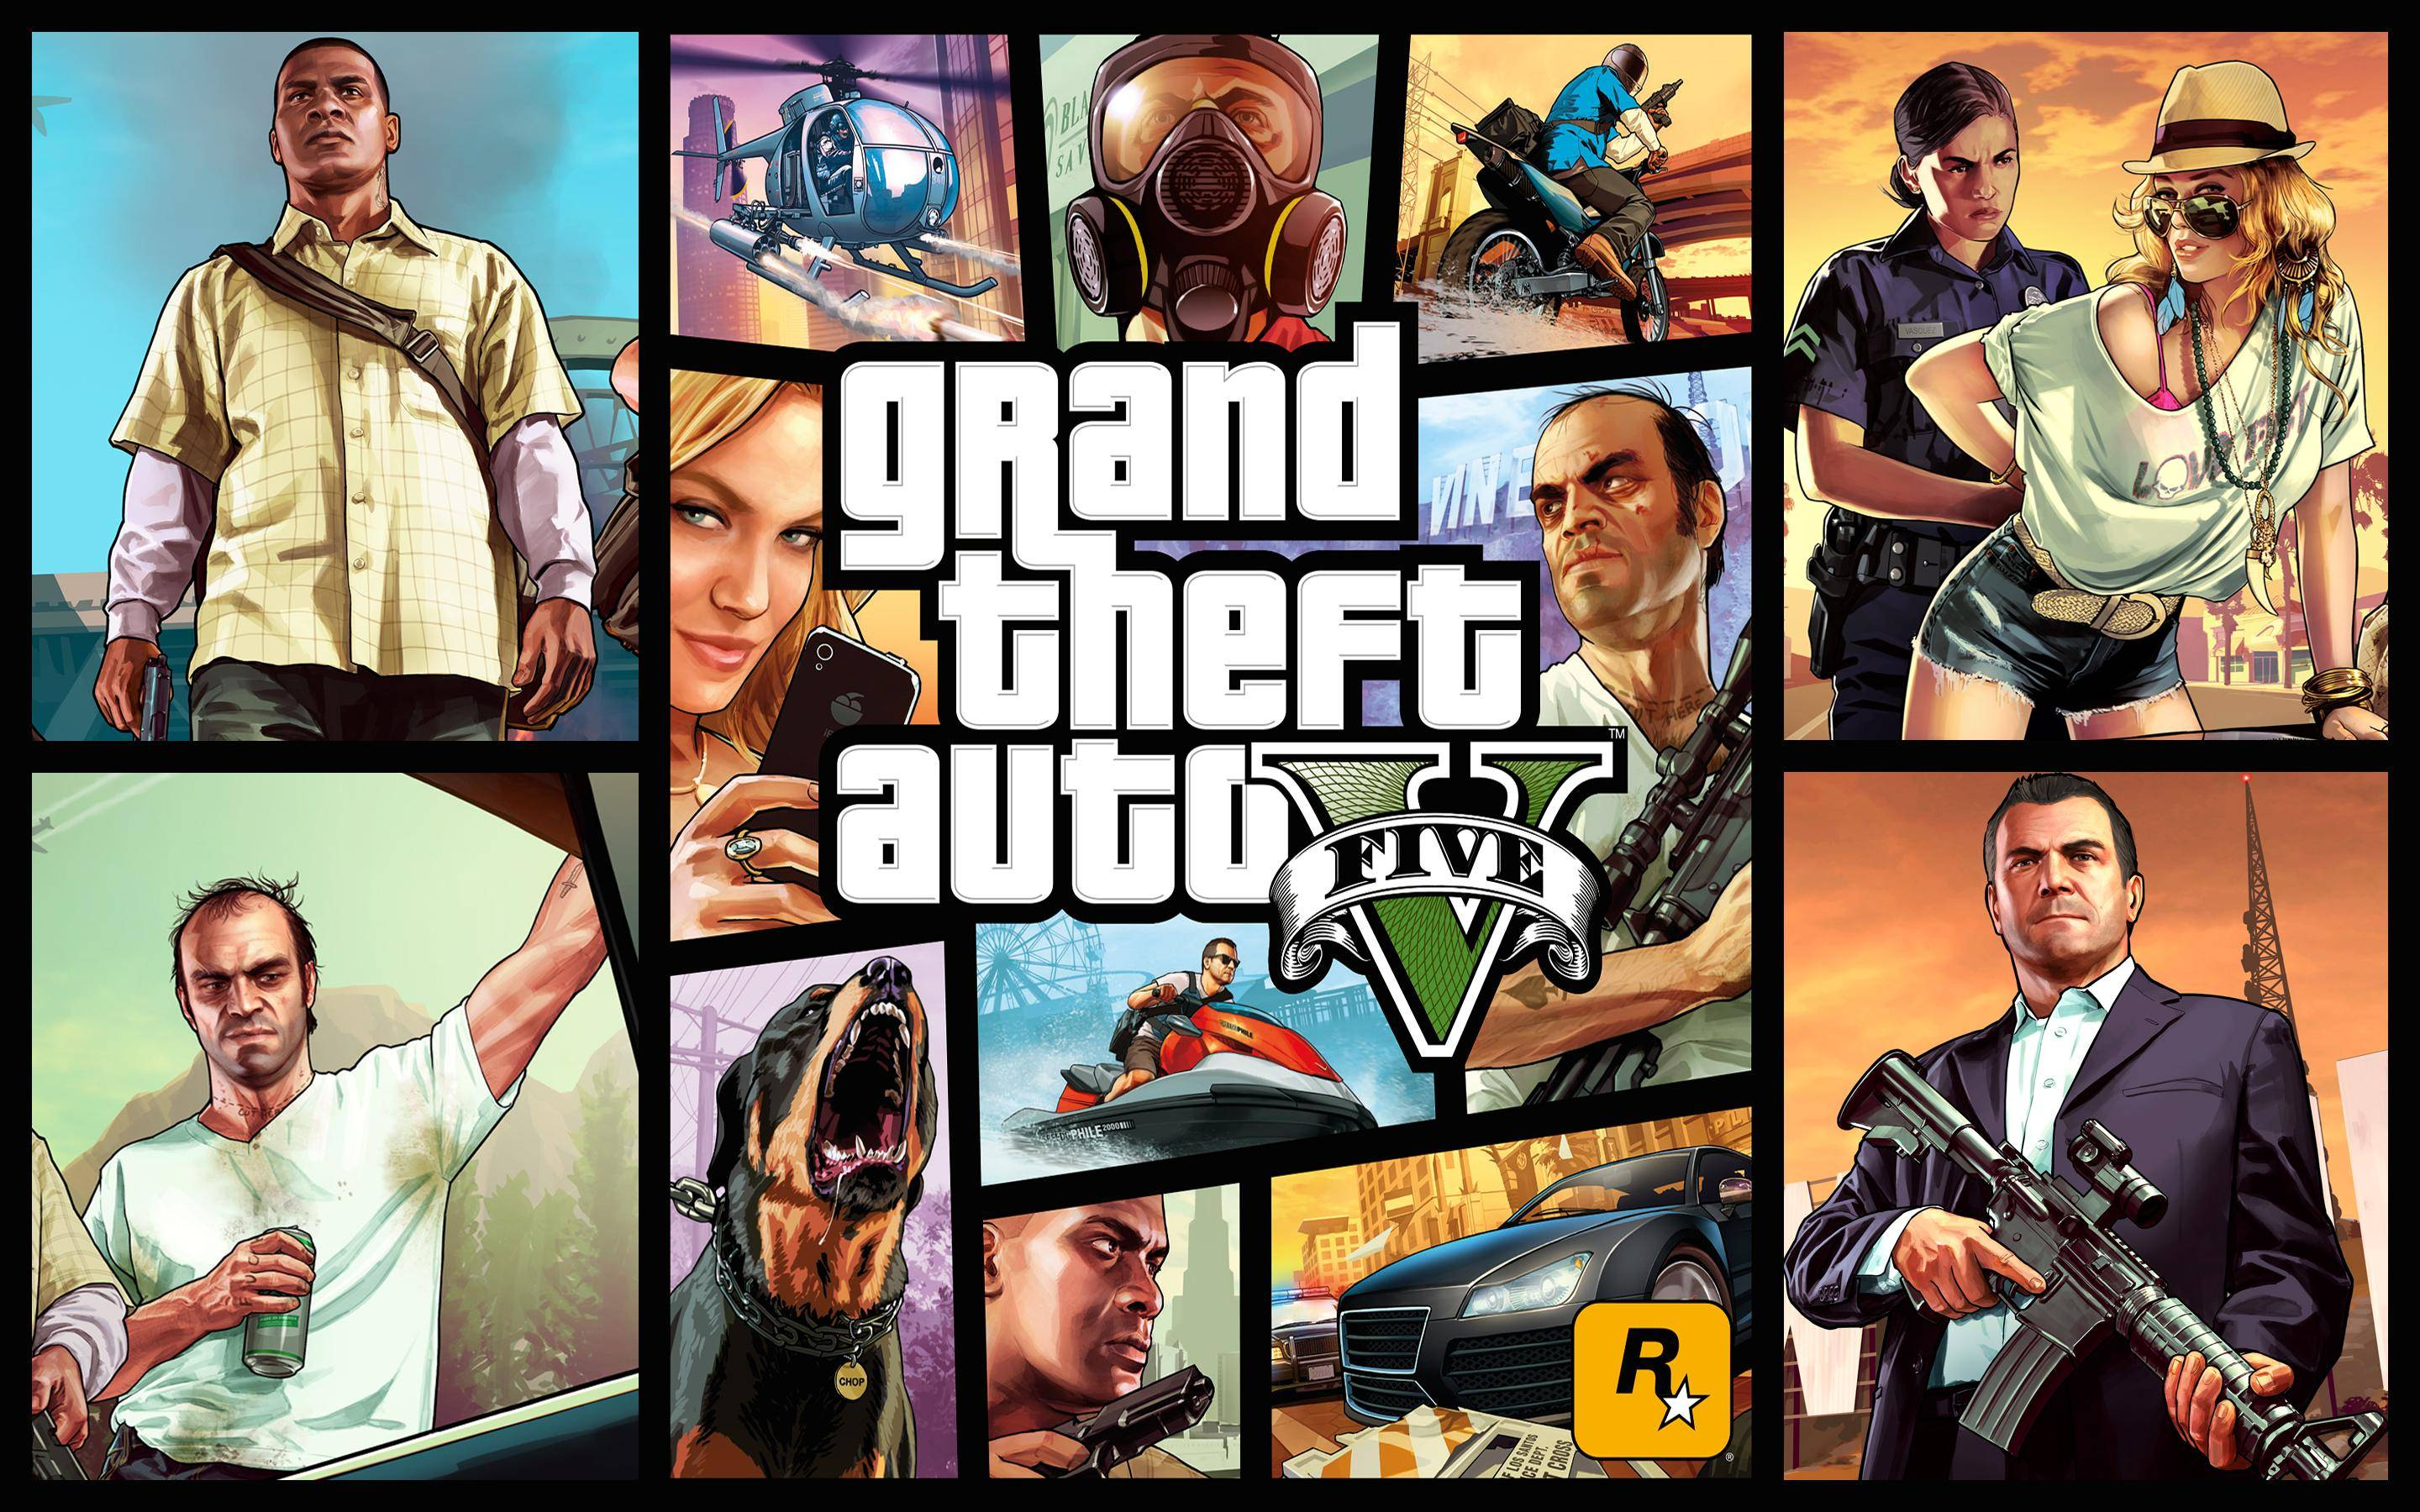 Grand Theft Auto V 5 ( Steam Gift ) RU+CIS + Bonus